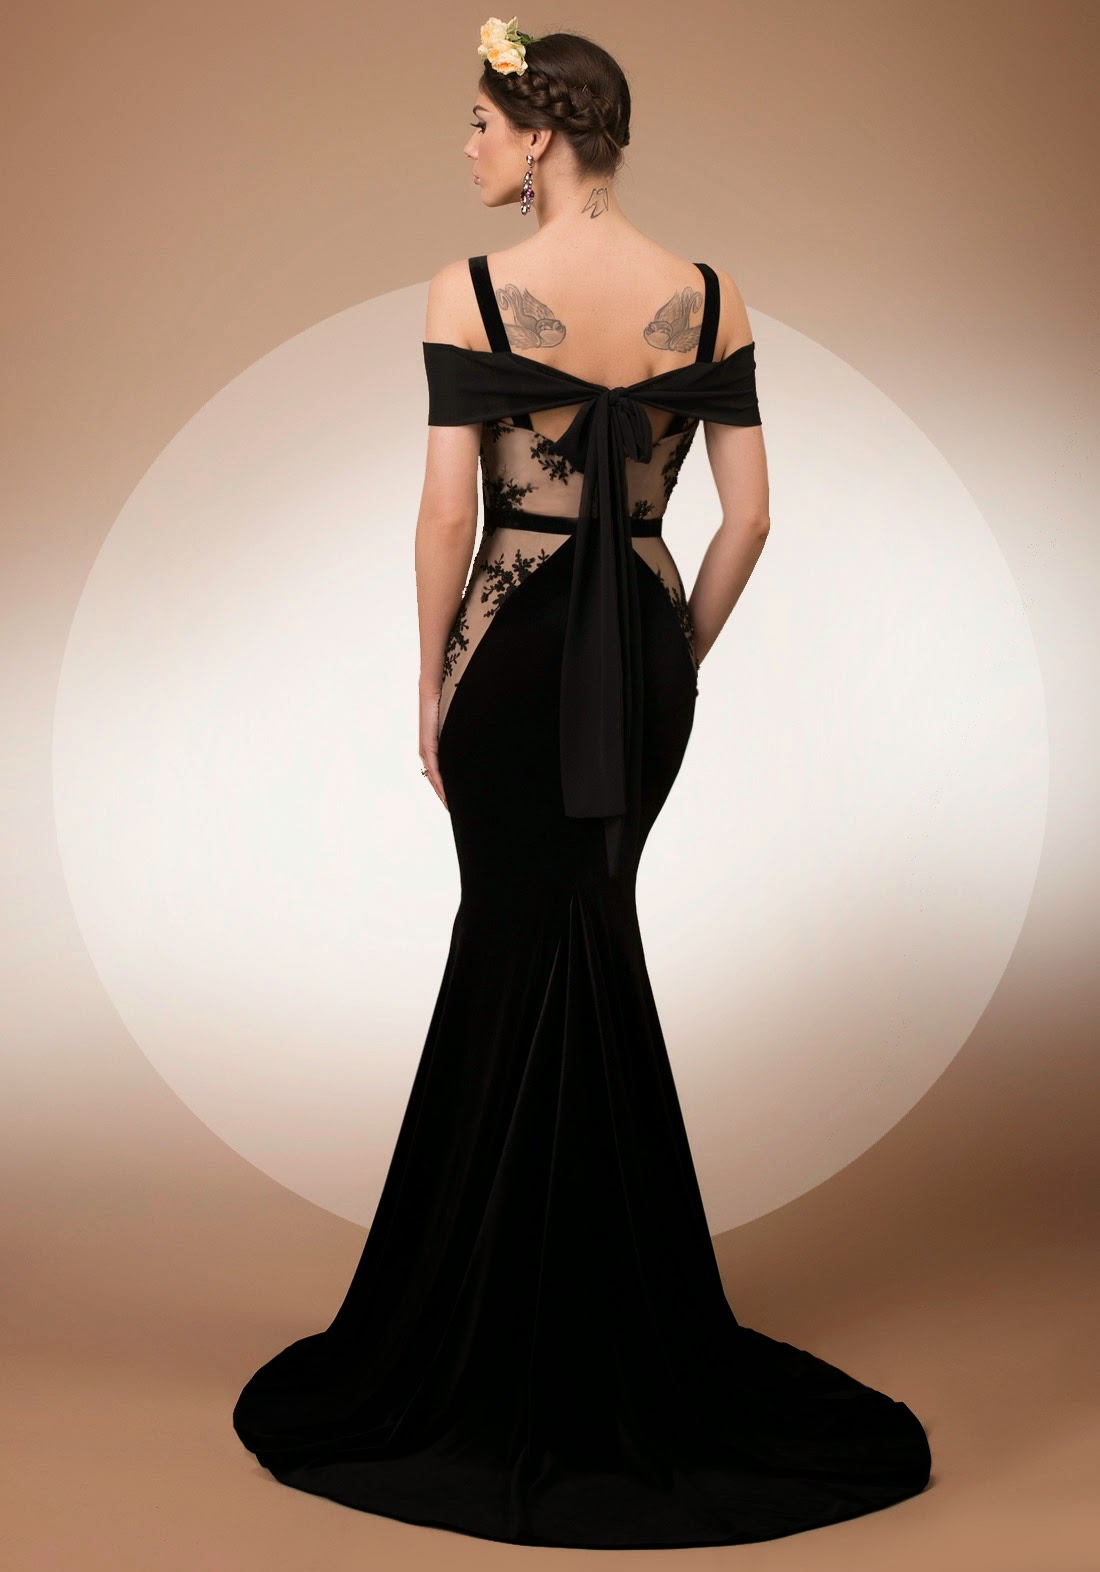 My Secret Dream, mermaid velvet, lace and veil evening dress with bow detail, Bien Savvy My Secret collection